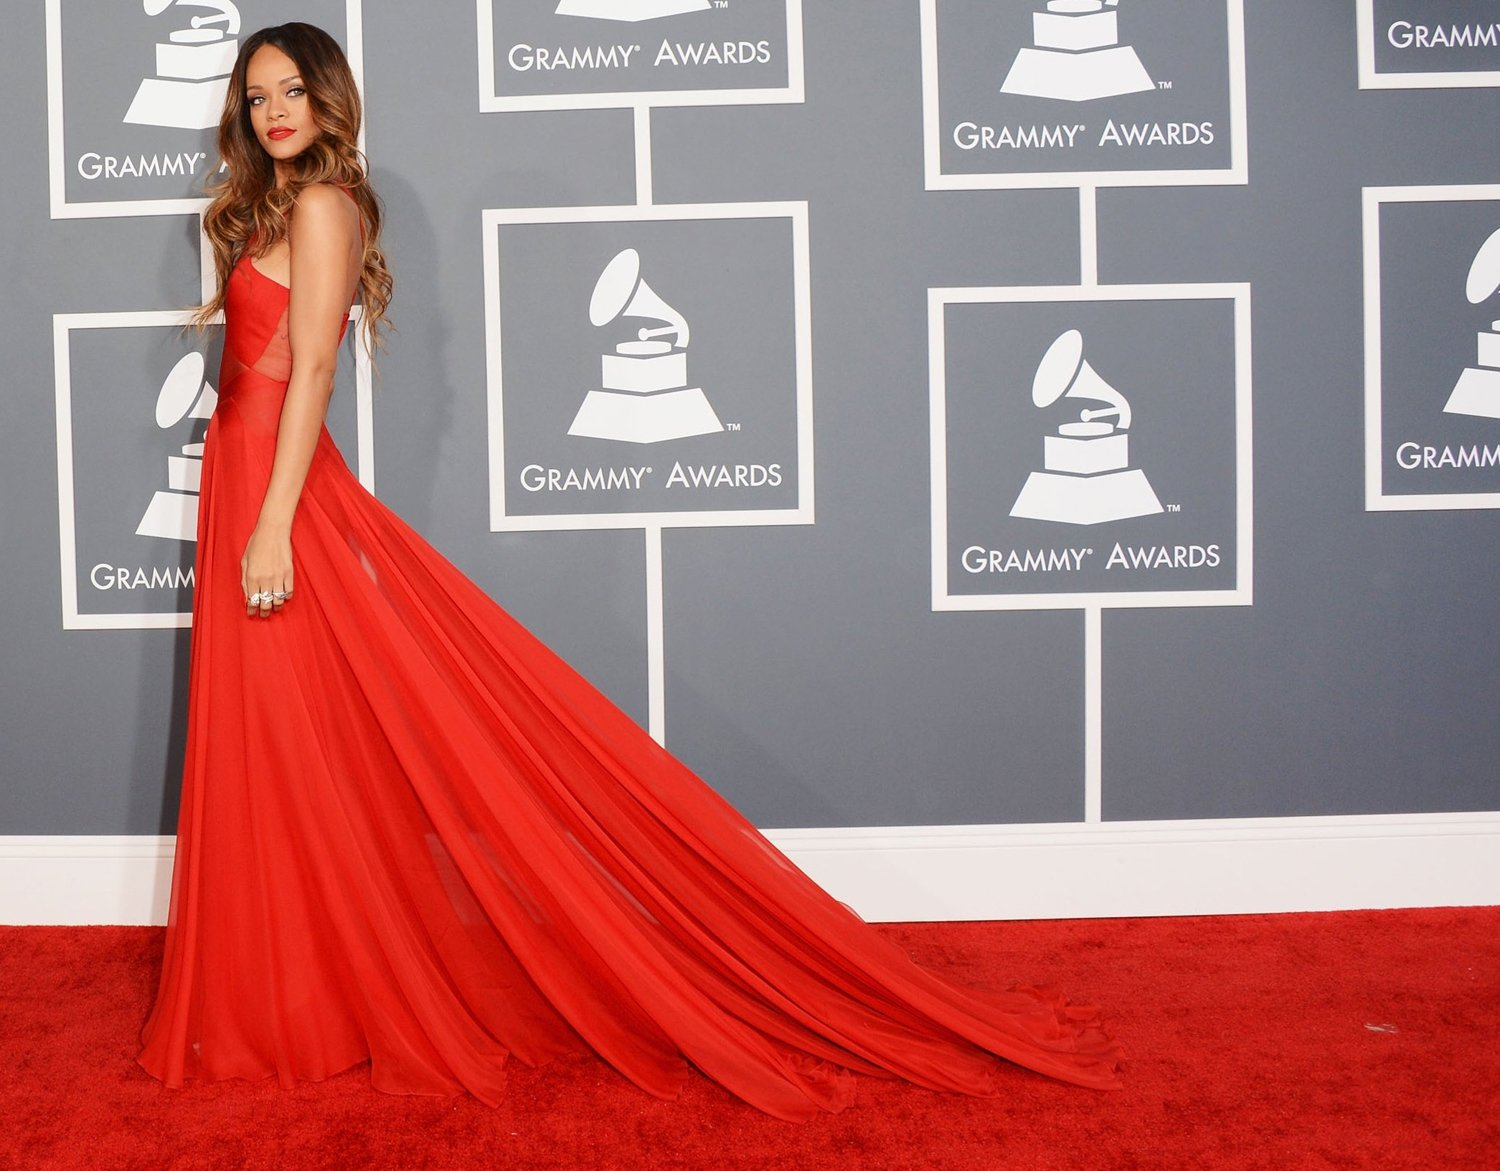 Rihanna-dress1_original